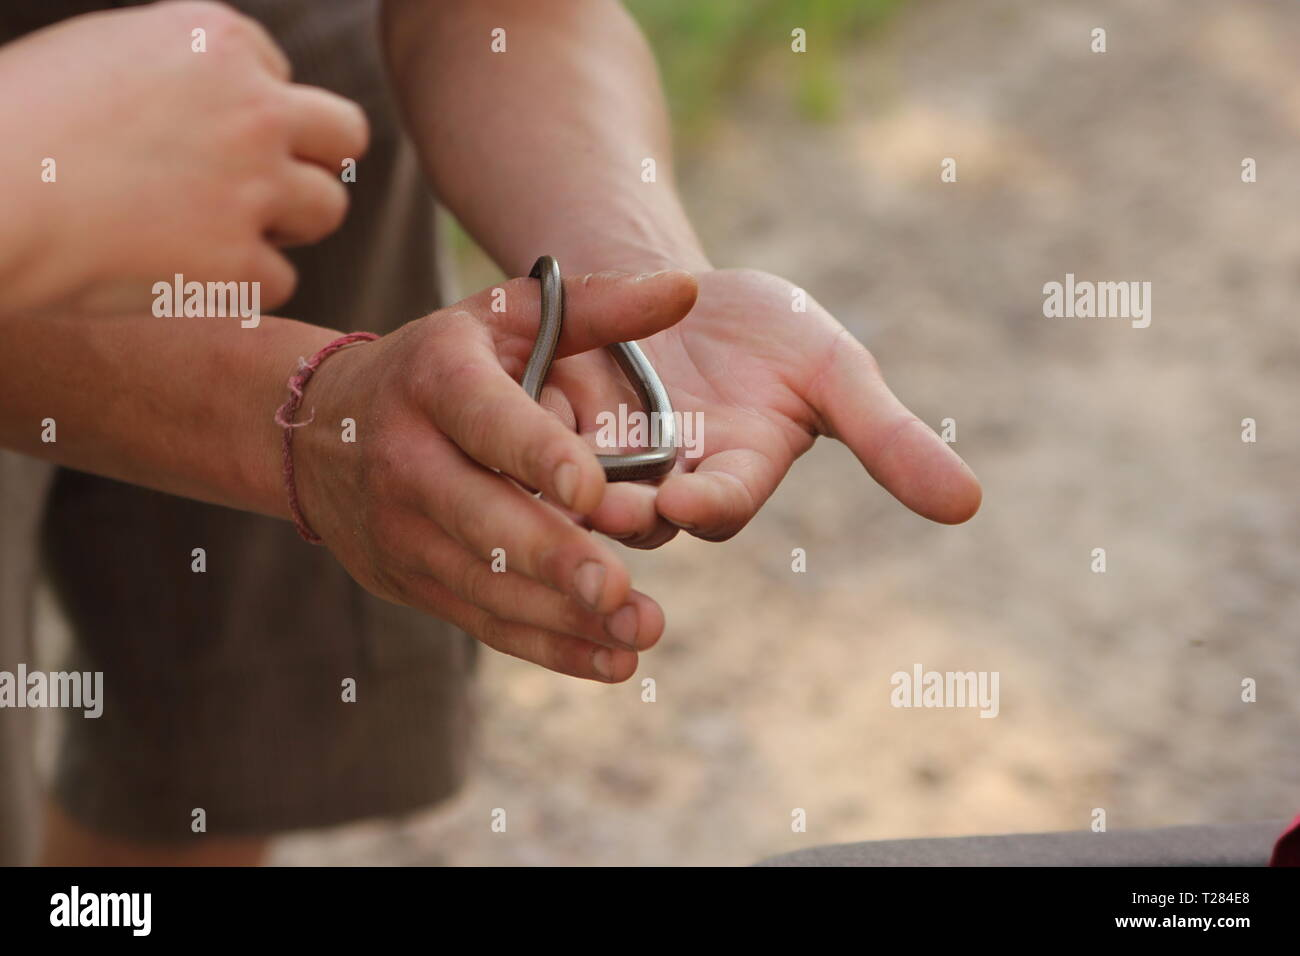 Someone holding an Anguis fragilis in their hands - Stock Image